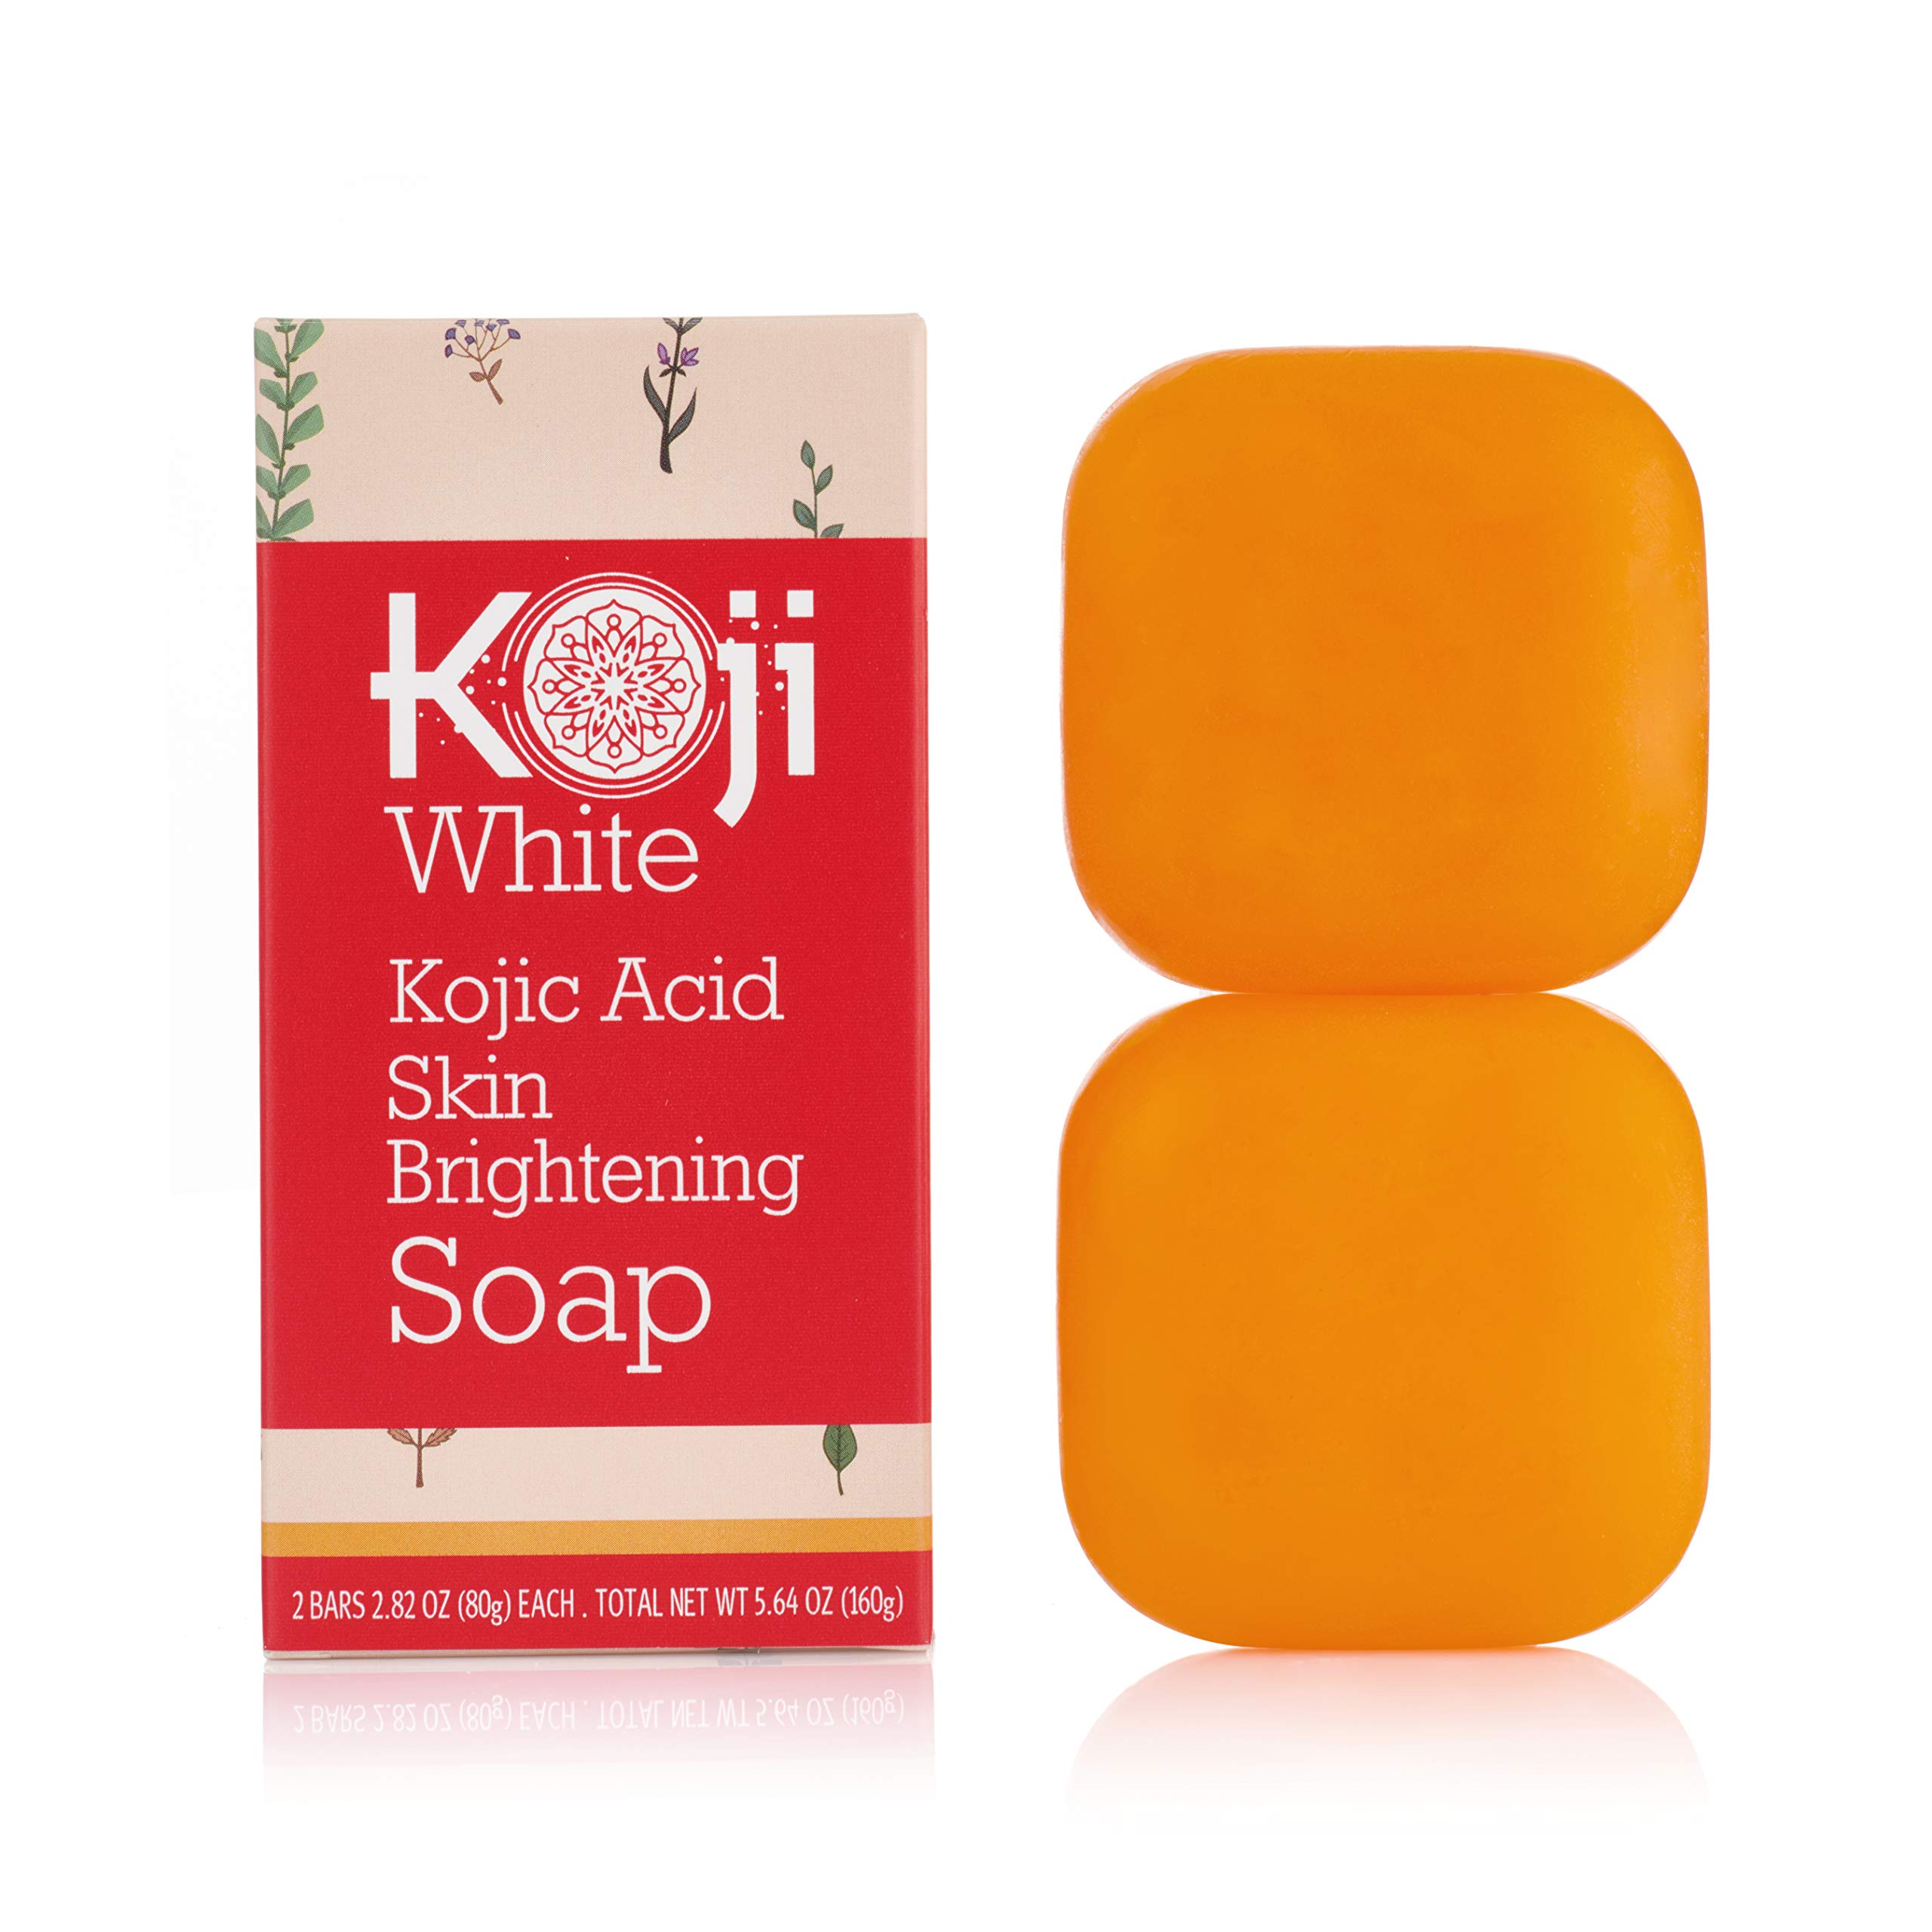 Pure Kojic Acid Skin Brightening Soap for Glowing & Radiance Skin, Dark Spots, Rejuvenate, Uneven Skin Tone (2.82 oz / 2 Bars) | Maximum Strength, SLS-free, Paraben-free - Dermatologist Tested